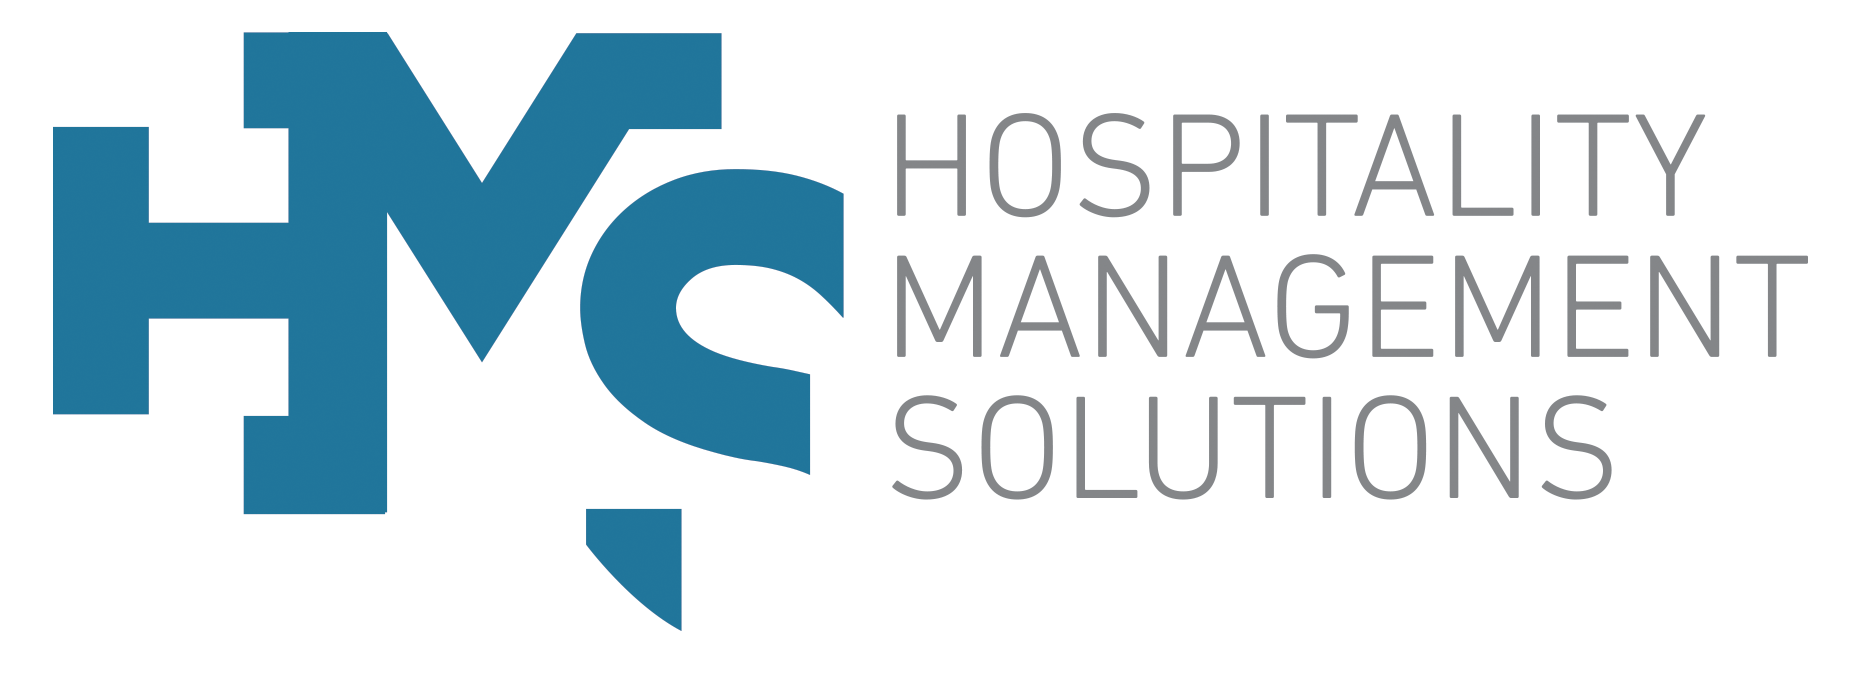 HMS - Hospitality Management Solutions